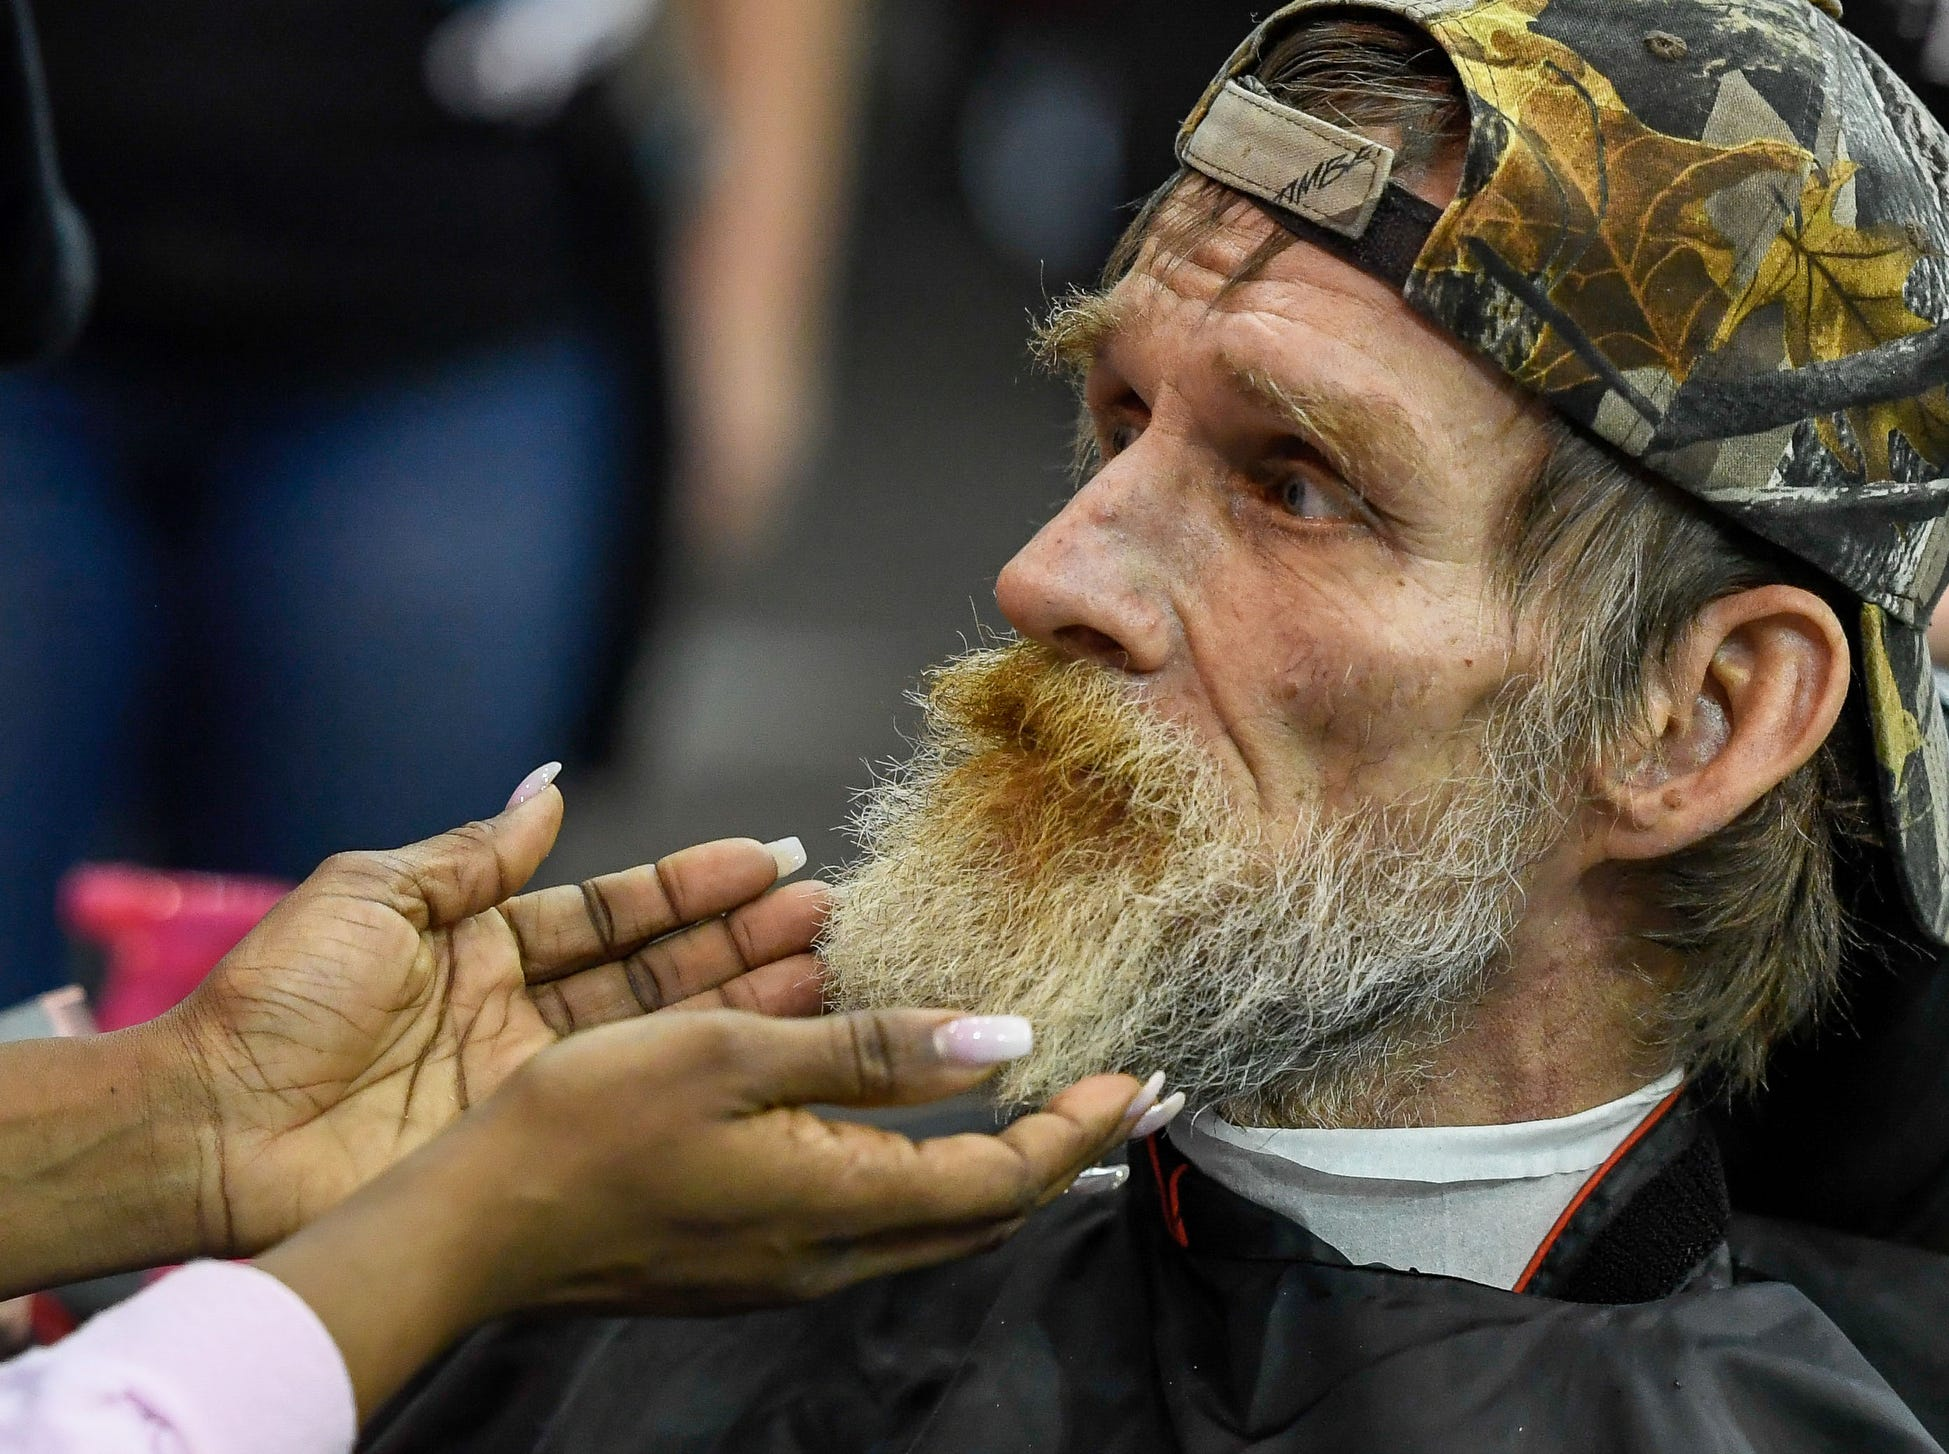 Evansville resident Roger Goodridge gets his beard evaluated before getting a trim during the Homeless Connect of Southwest Indiana event where more than 70 local agencies gathered at the Old National Events Plaza to help the homeless with employment, education, housing and health screening, Thursday, March 21, 2019.